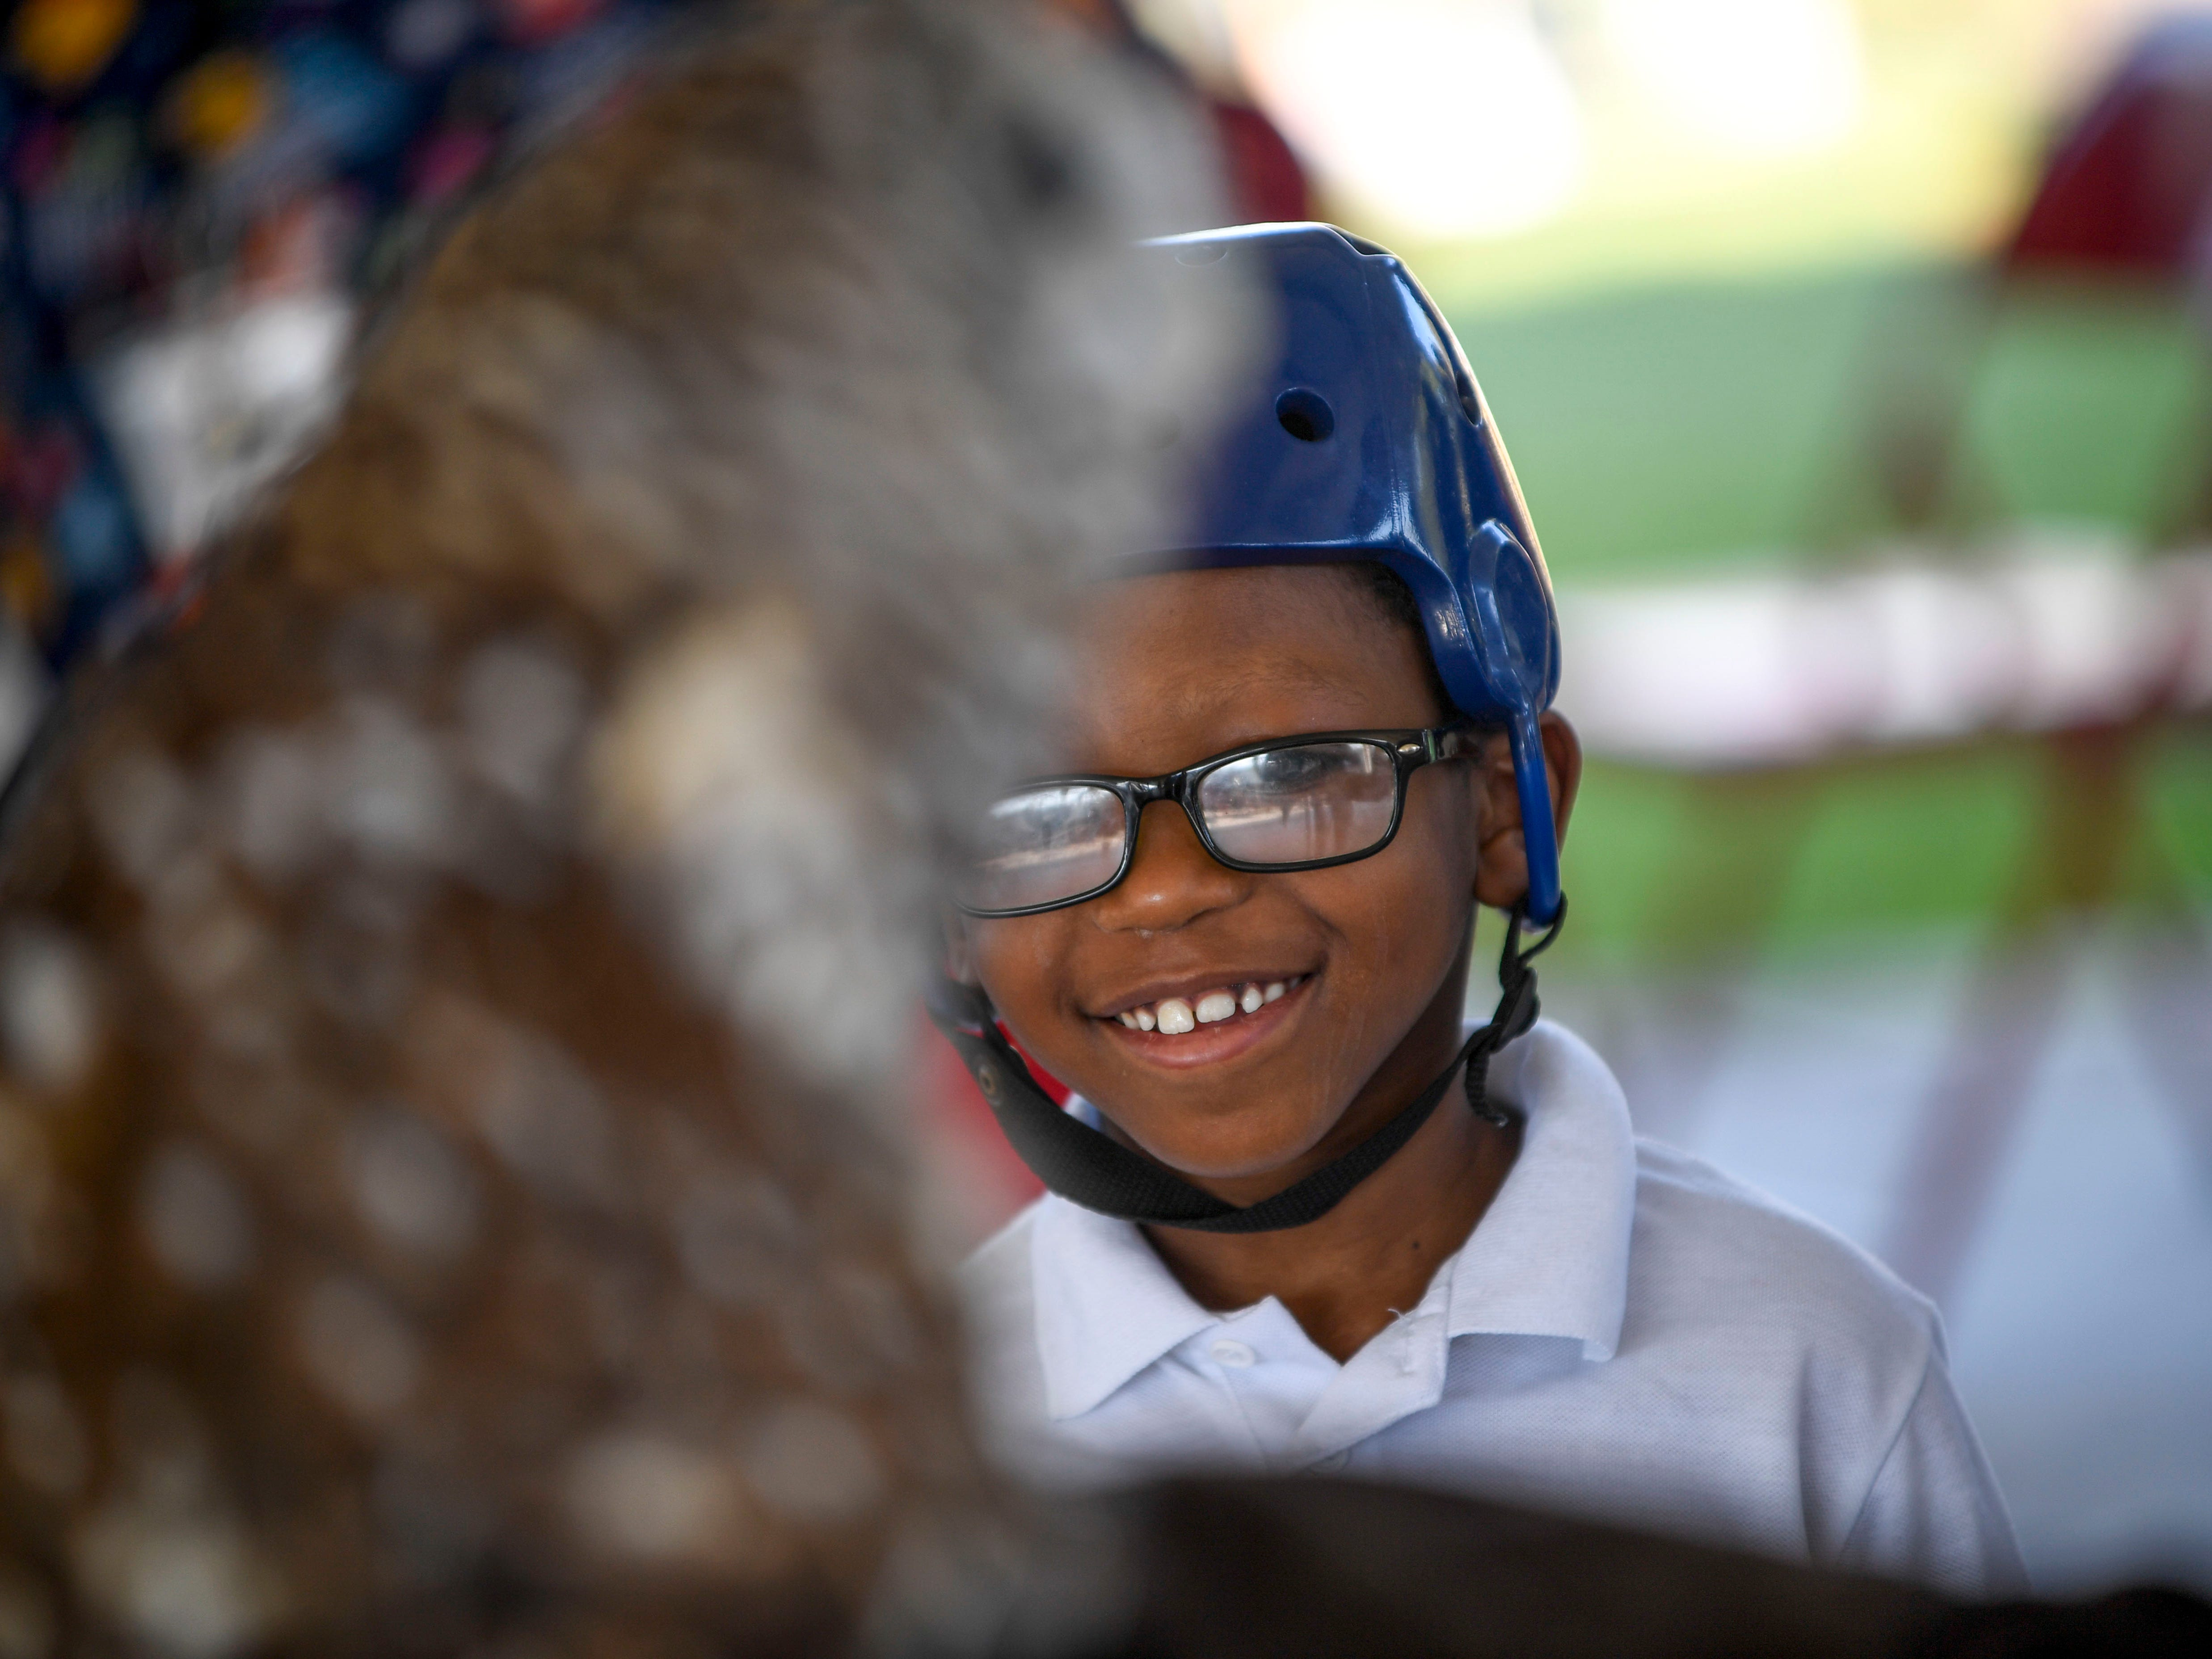 A young boy has a staring contest with a barred owl at the Day of Champions celebration held at Jackson Fairgrounds Park in Jackson, Tenn., on Wednesday, Sept. 19, 2018.